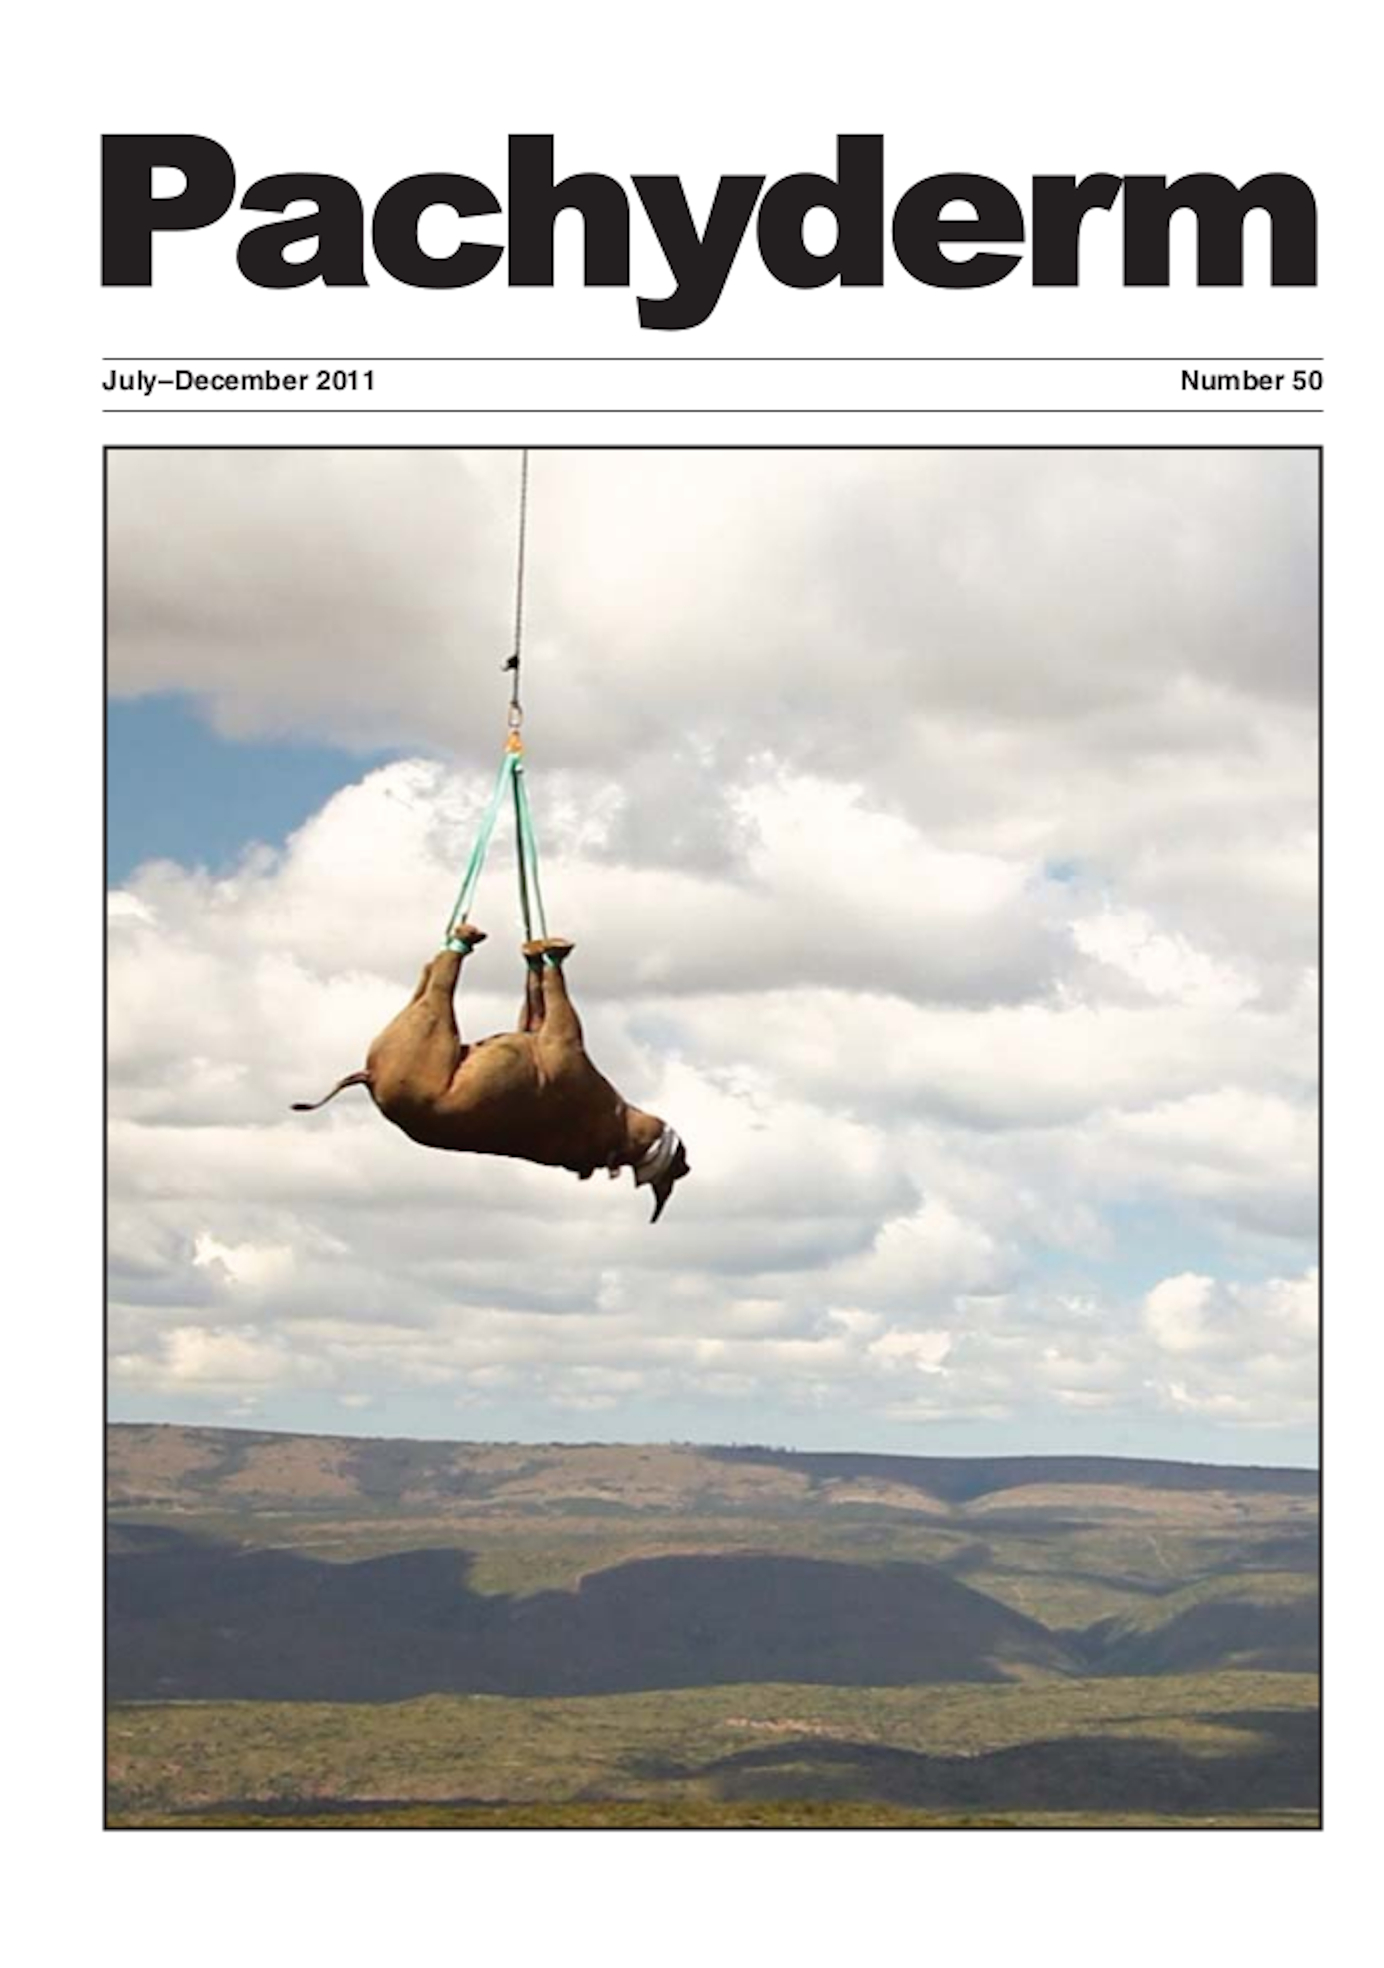 Cover: Immobilized black rhino (Diceros bicornis minor) being air-lifted out of a nature reserve in the Eastern Cape Province of South Africa. See brief note on page 68. Photo: © WWF/Green Renaissance